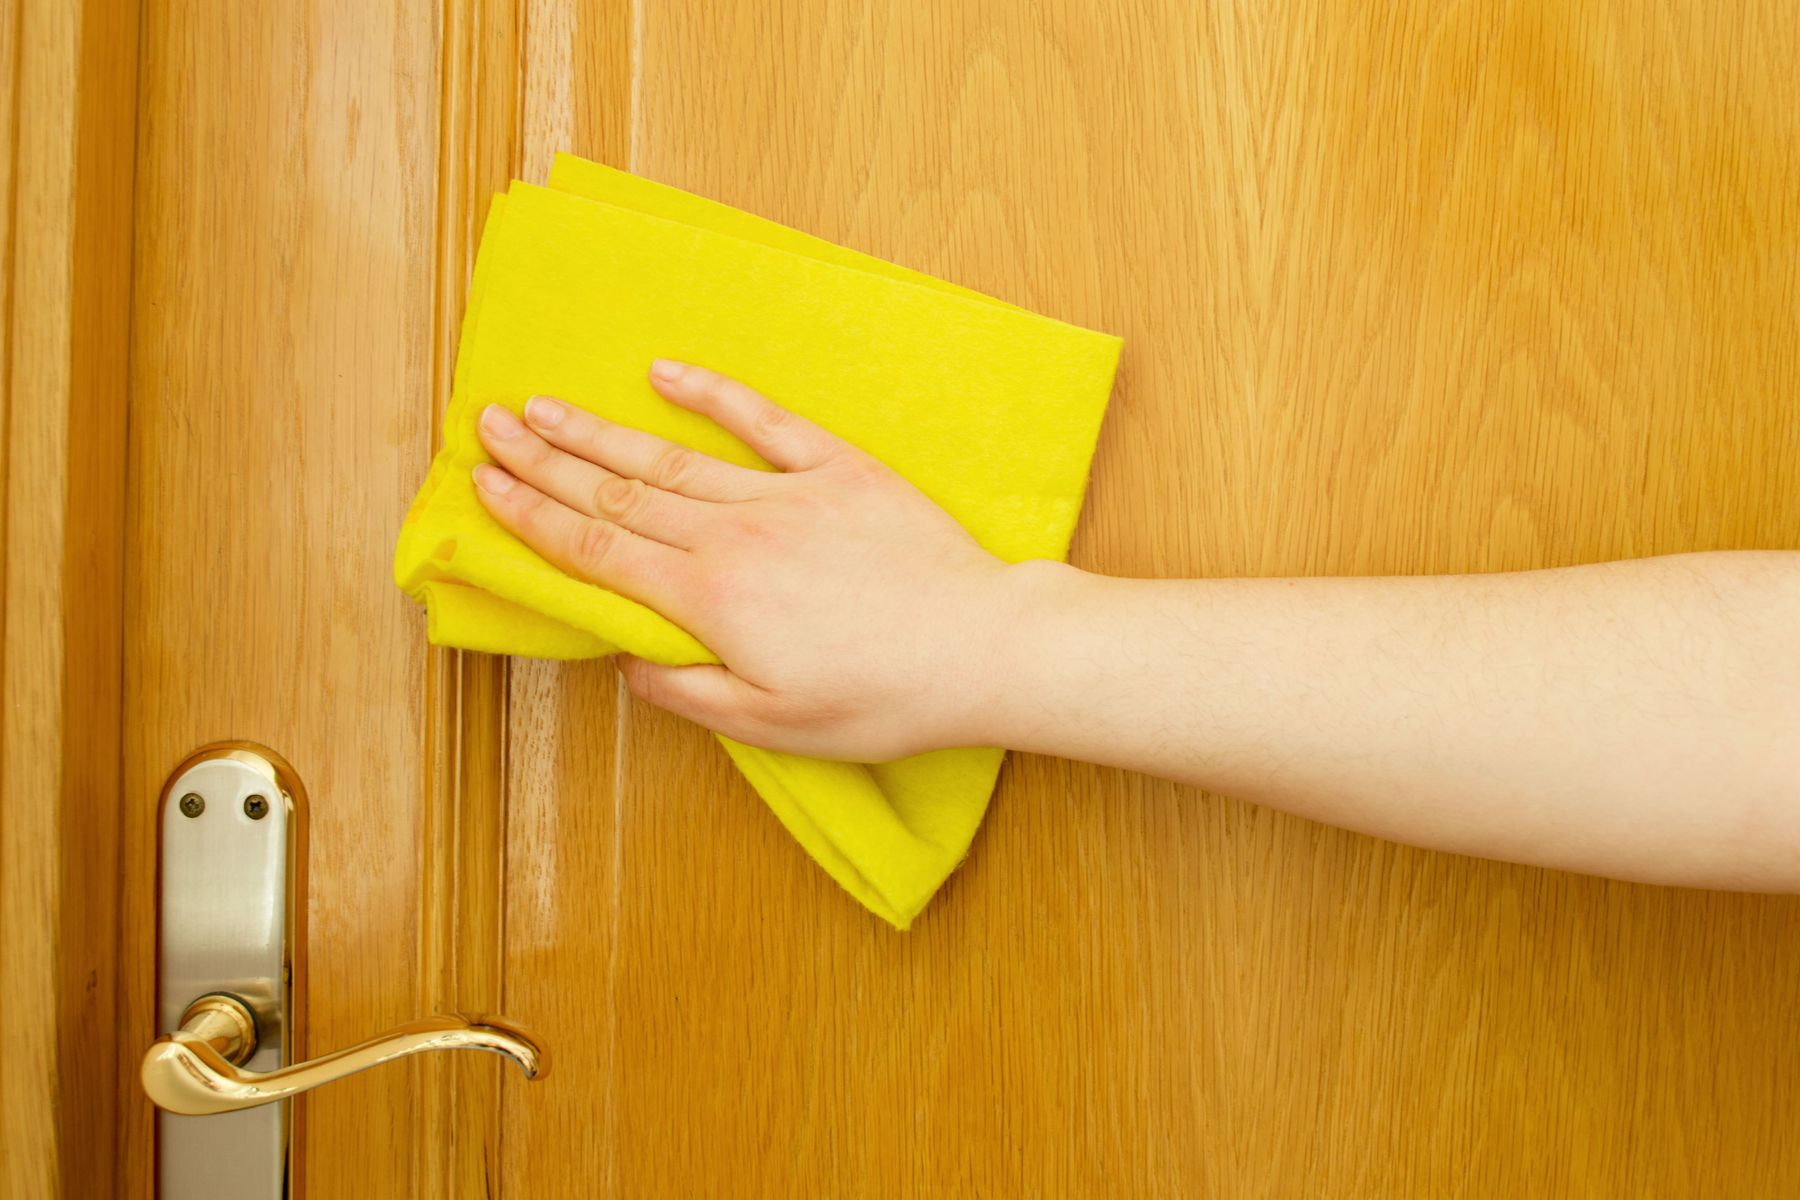 Is fungus growth compromising the health of your bathroom door? Here's how you can get rid of them!